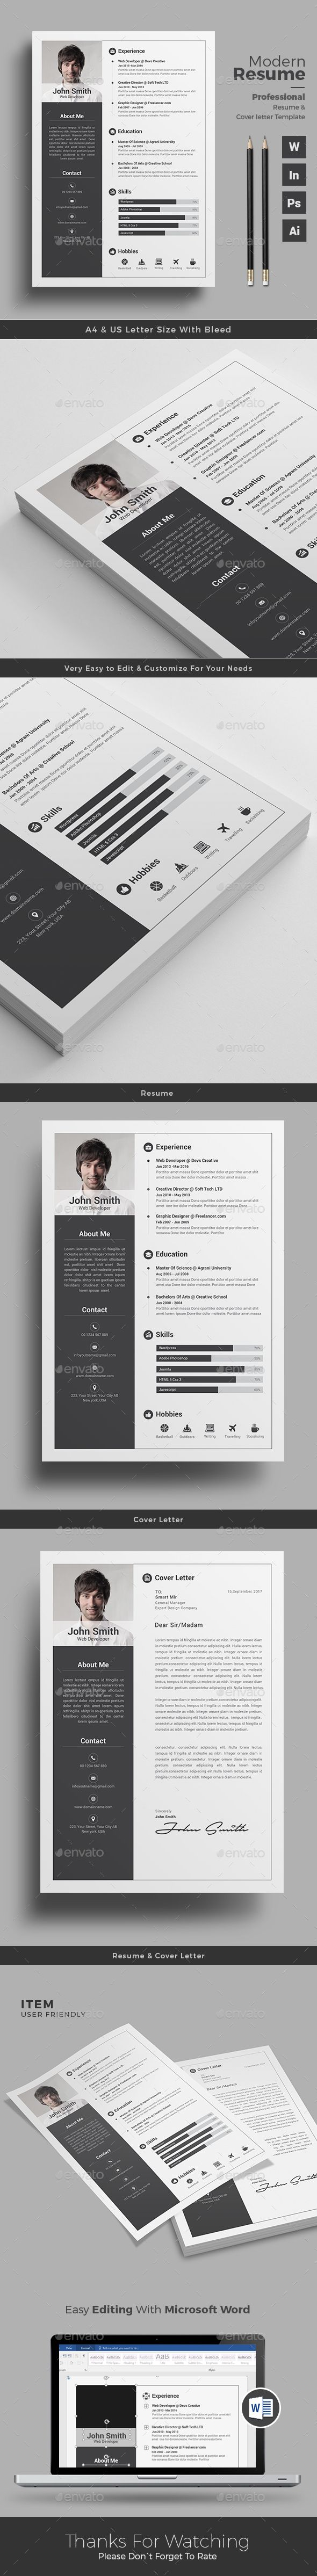 Infographic Resume by themedevisers Resume Word Template / CV Template with super clean and modern look. Clean Resume Template page designs are easy to use and custo